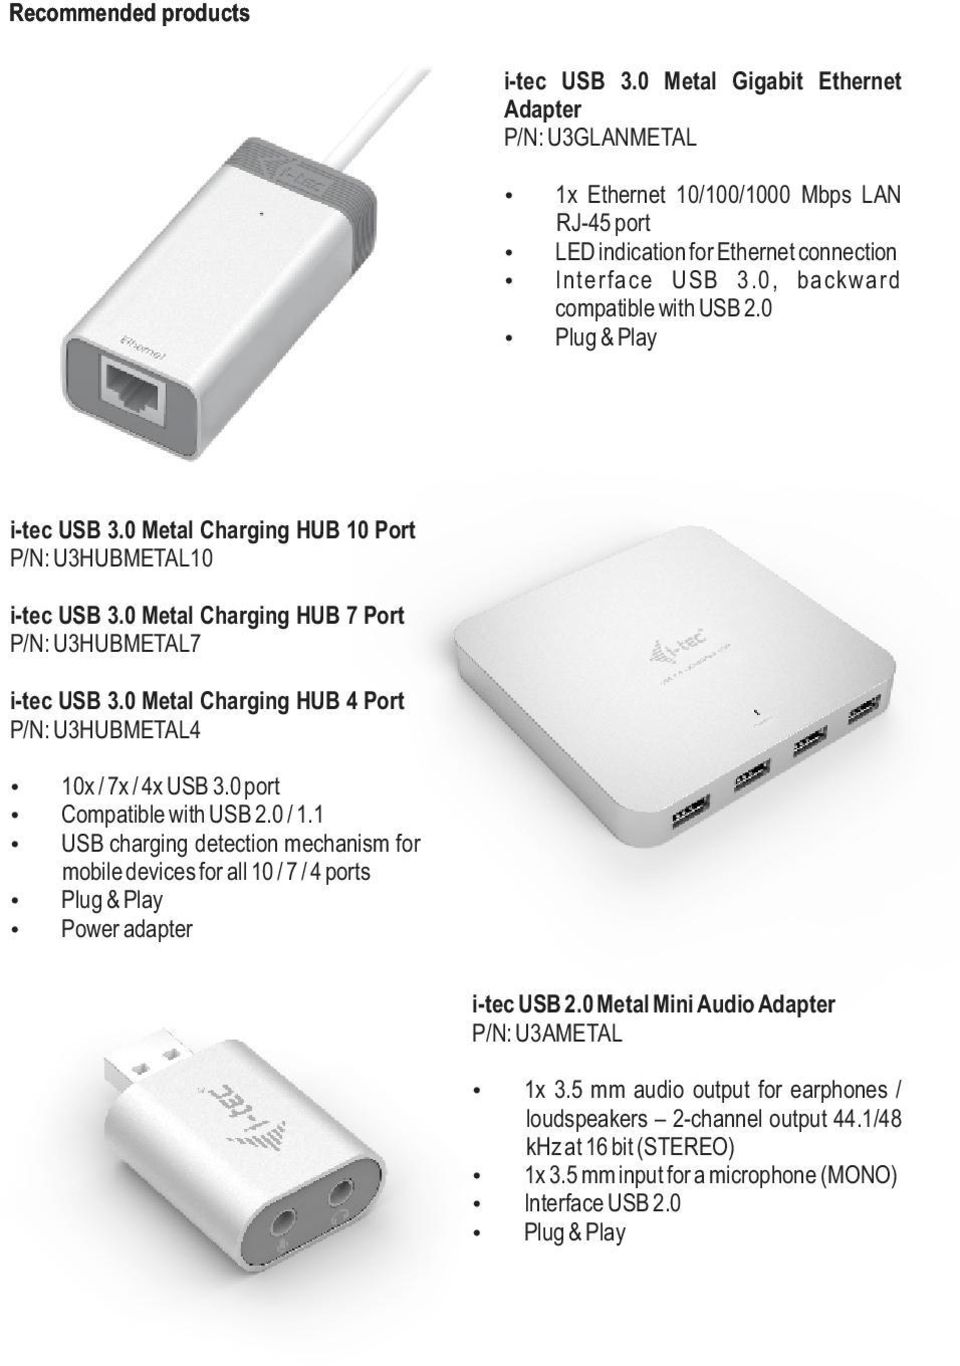 0 Metal Charging HUB 4 Port P/N: U3HUBMETAL4 10x / 7x / 4x USB 3.0 port Compatible with USB 2.0 / 1.